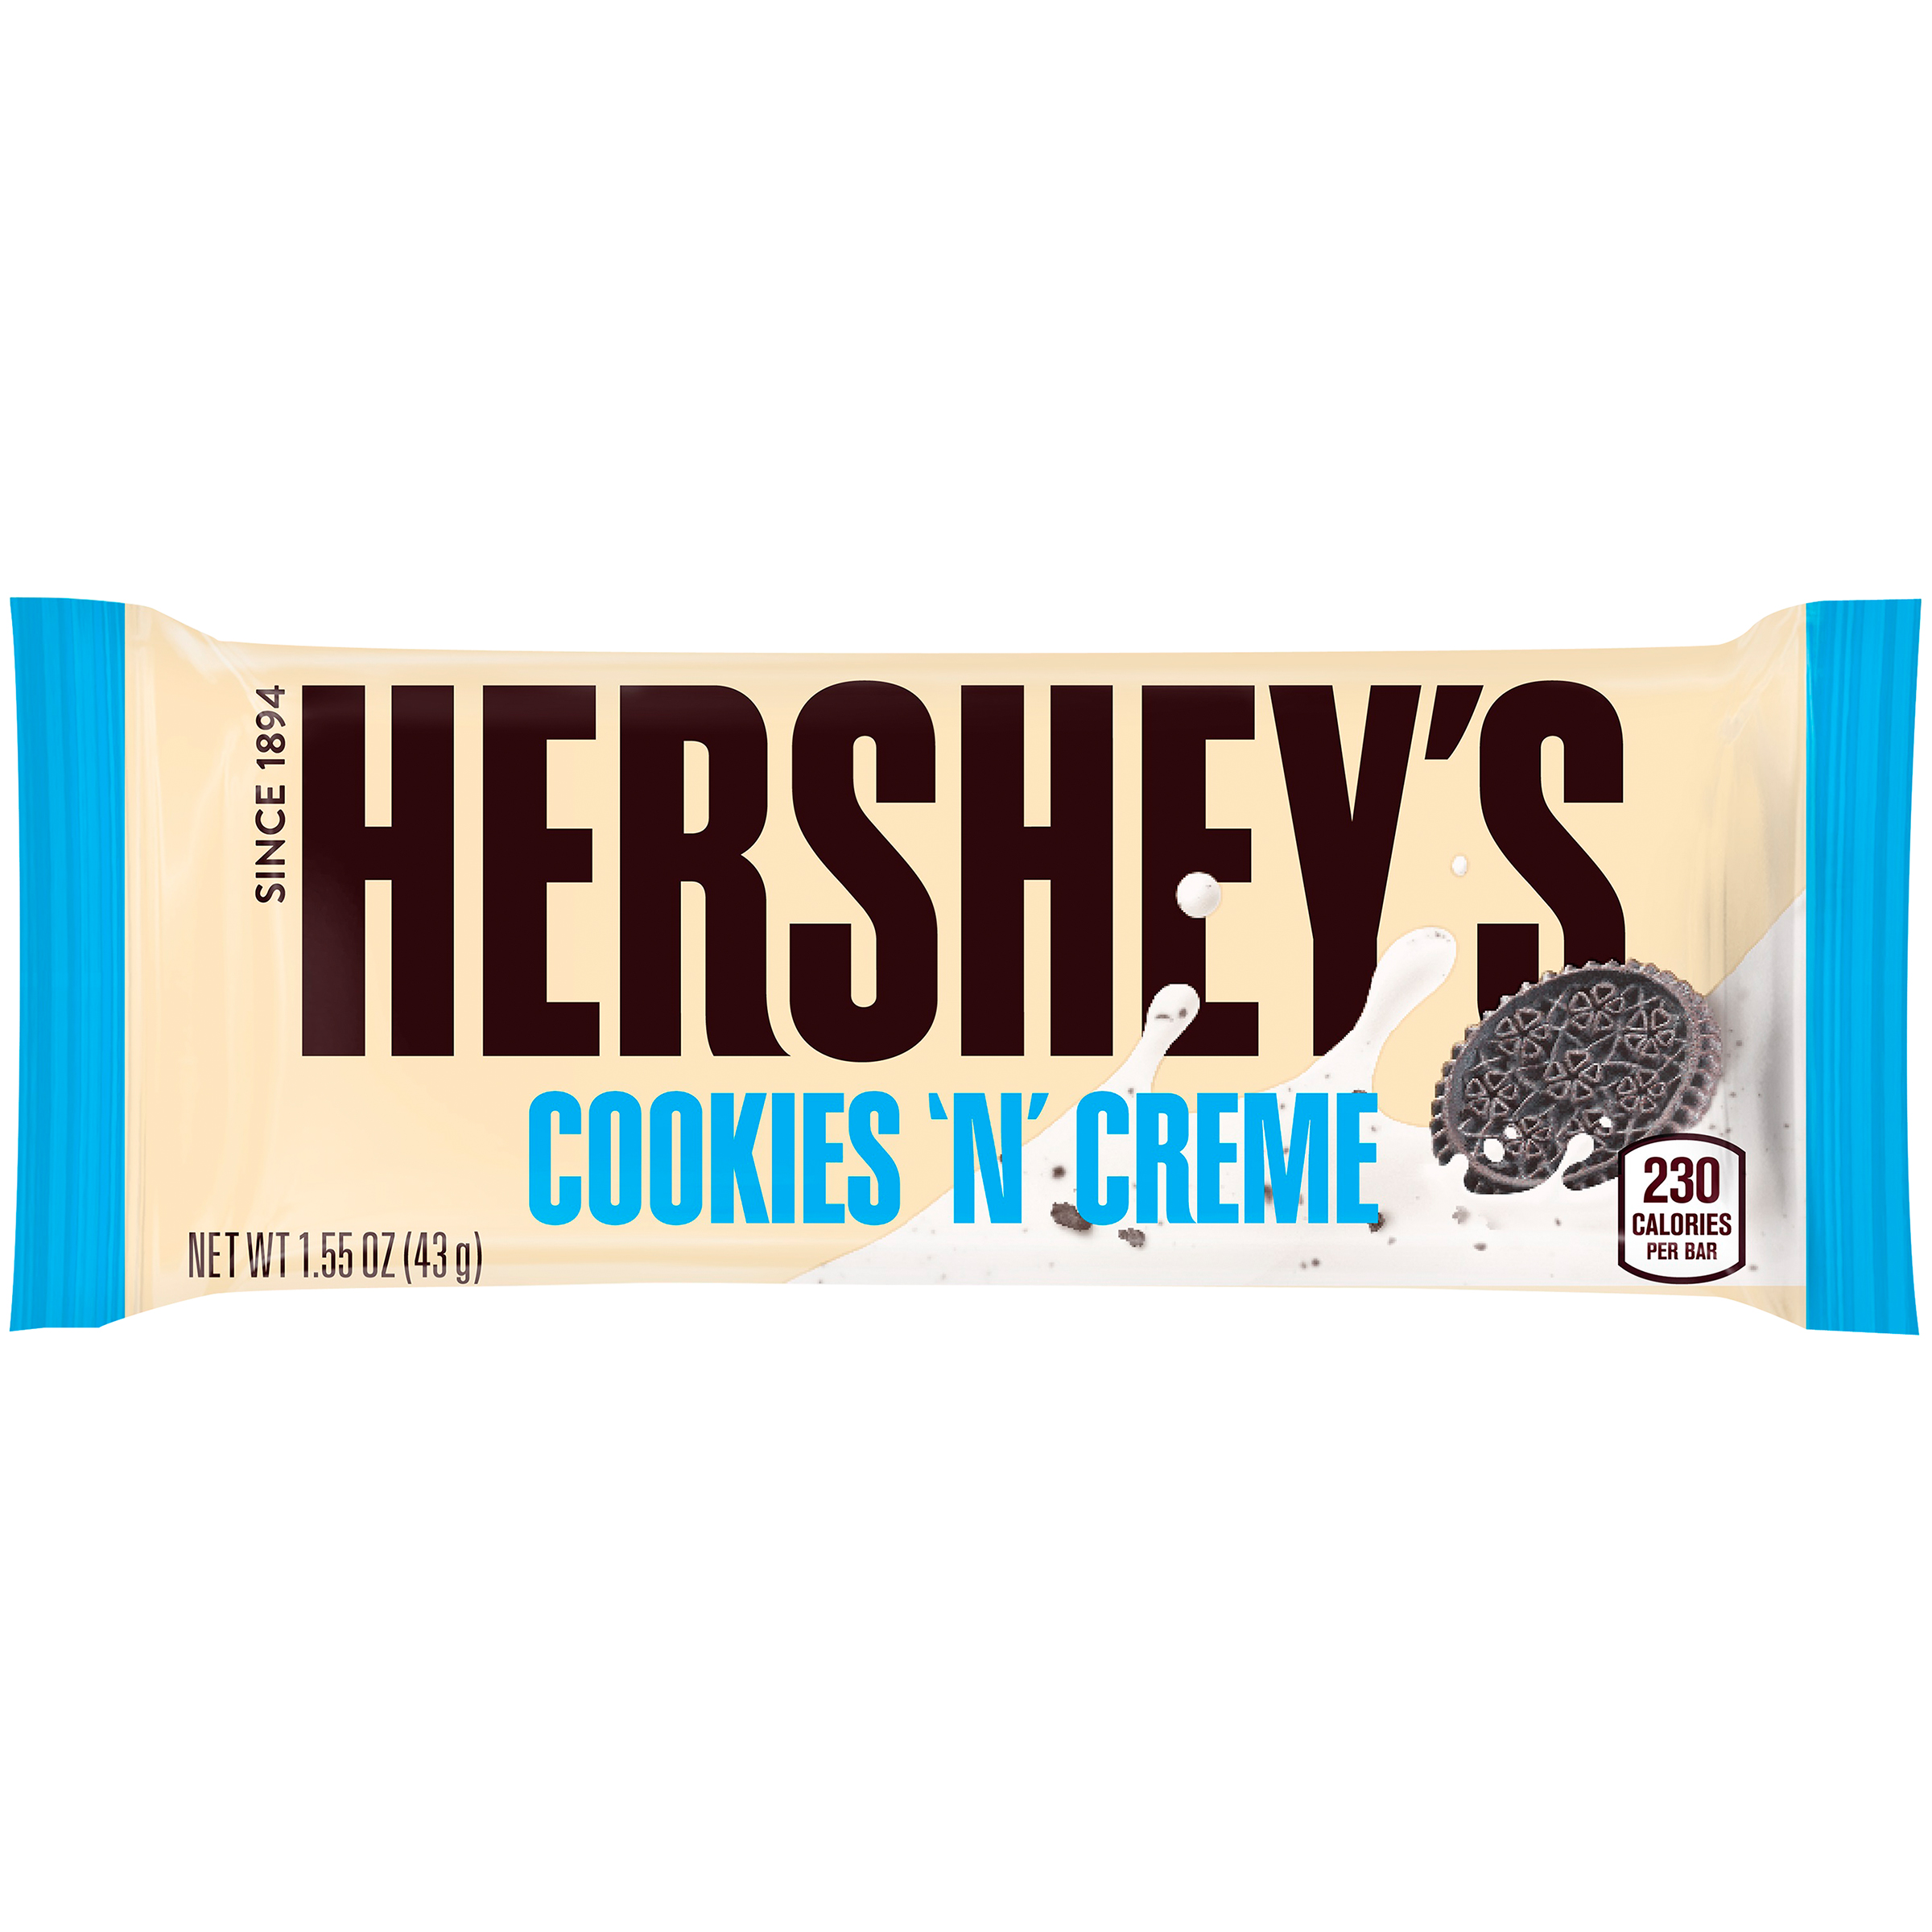 HERSHEY'S Cookies 'n' Creme Candy Bar, 1.55 oz